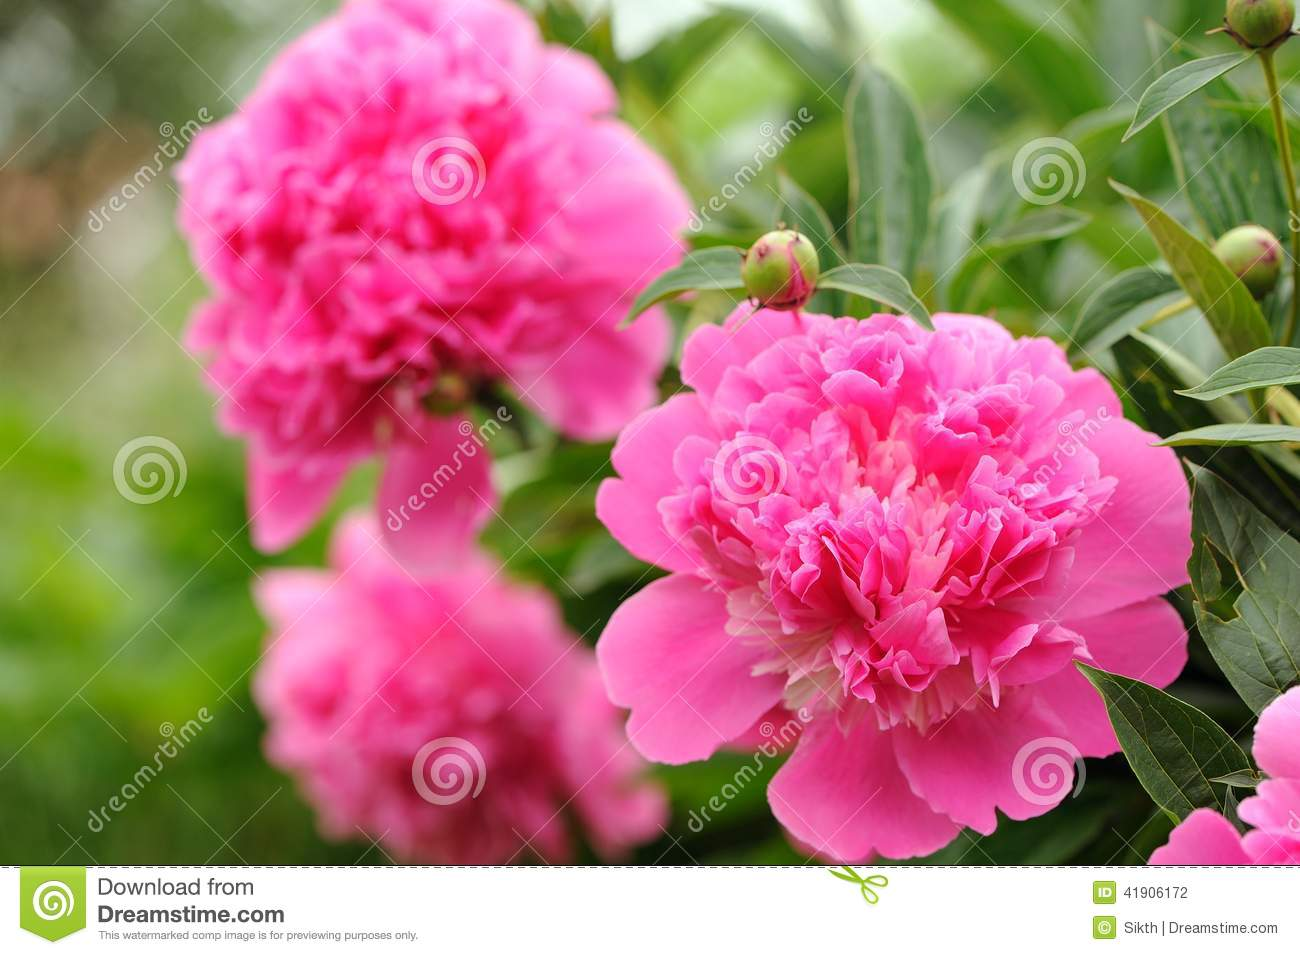 Pink peony flowers with buds in the garden stock photo image 41906172 - Growing peonies in the garden ...